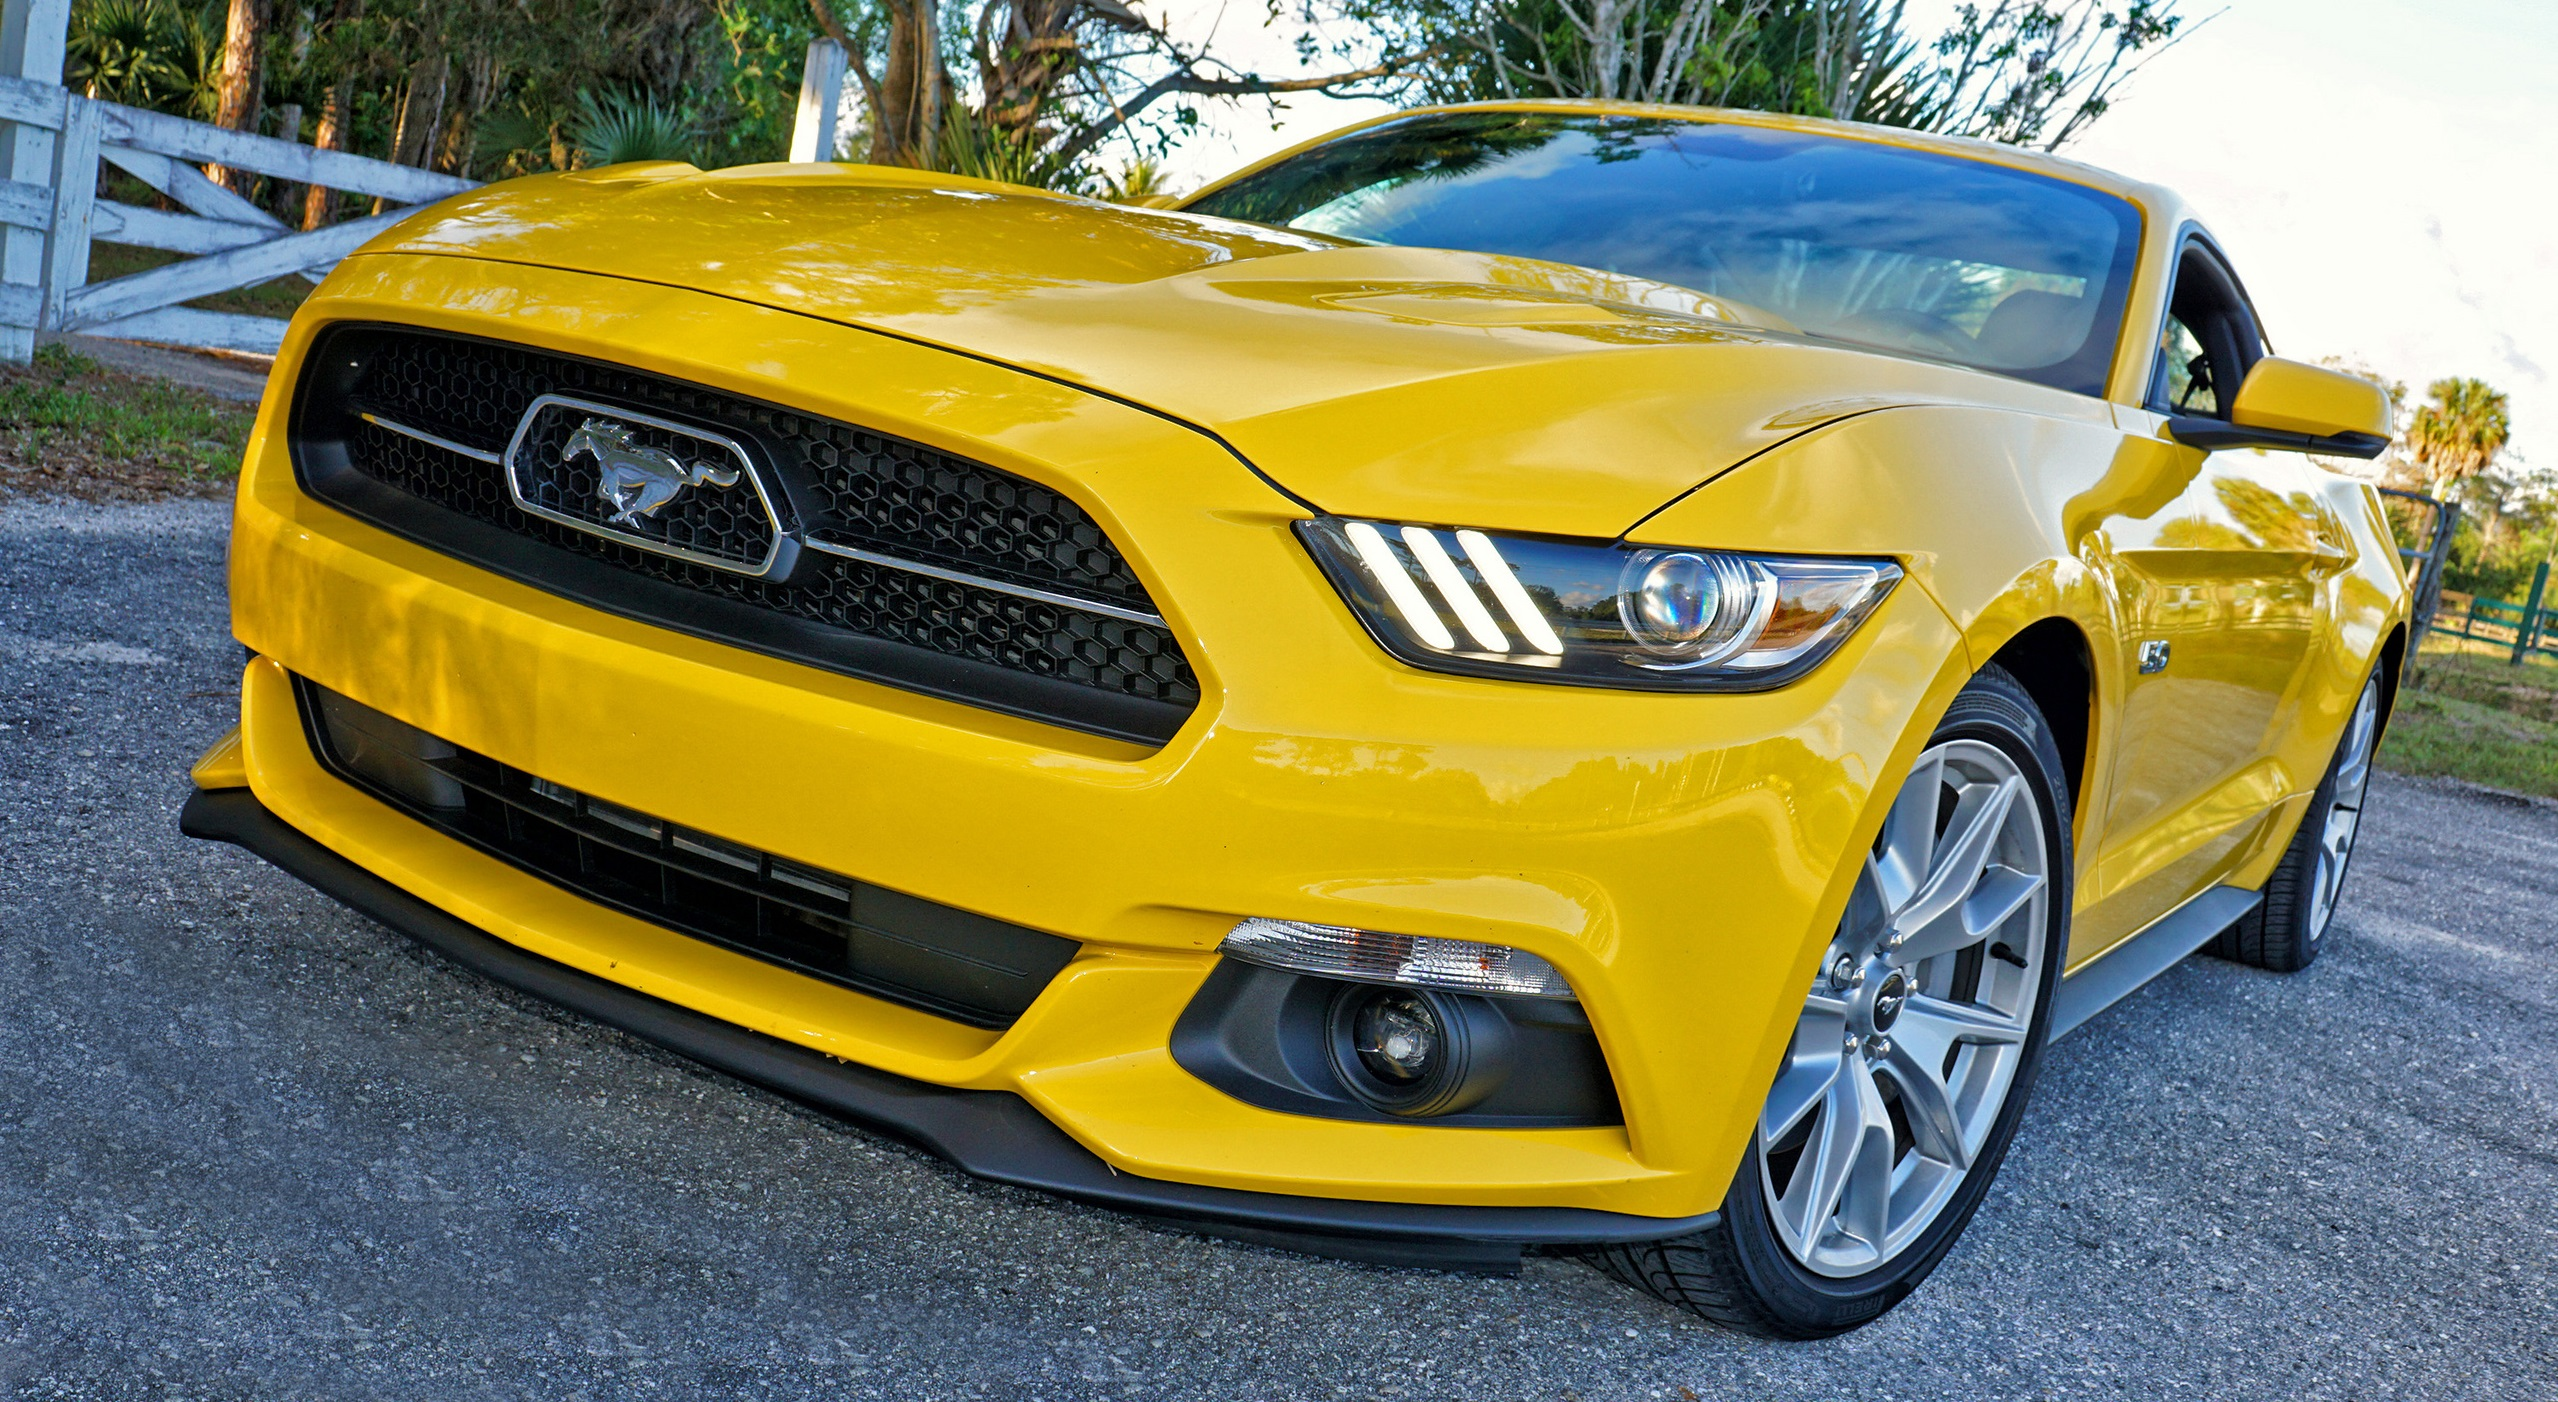 Обзор: 2015 Ford Mustang GT фото